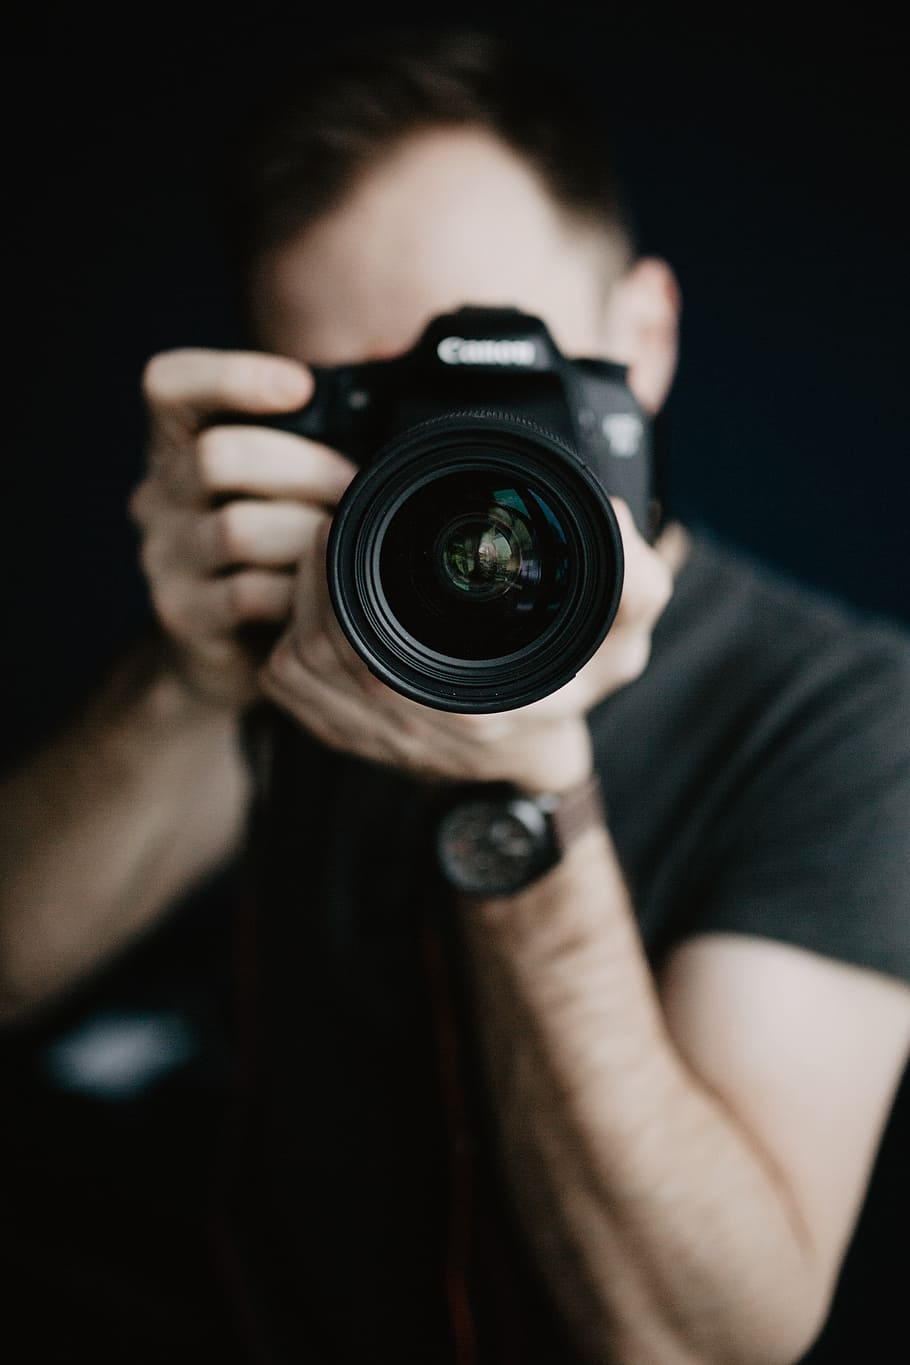 Young Man Taking Photos Working Camera Photography Photography Camera Images Hd 910x1365 Wallpaper Teahub Io